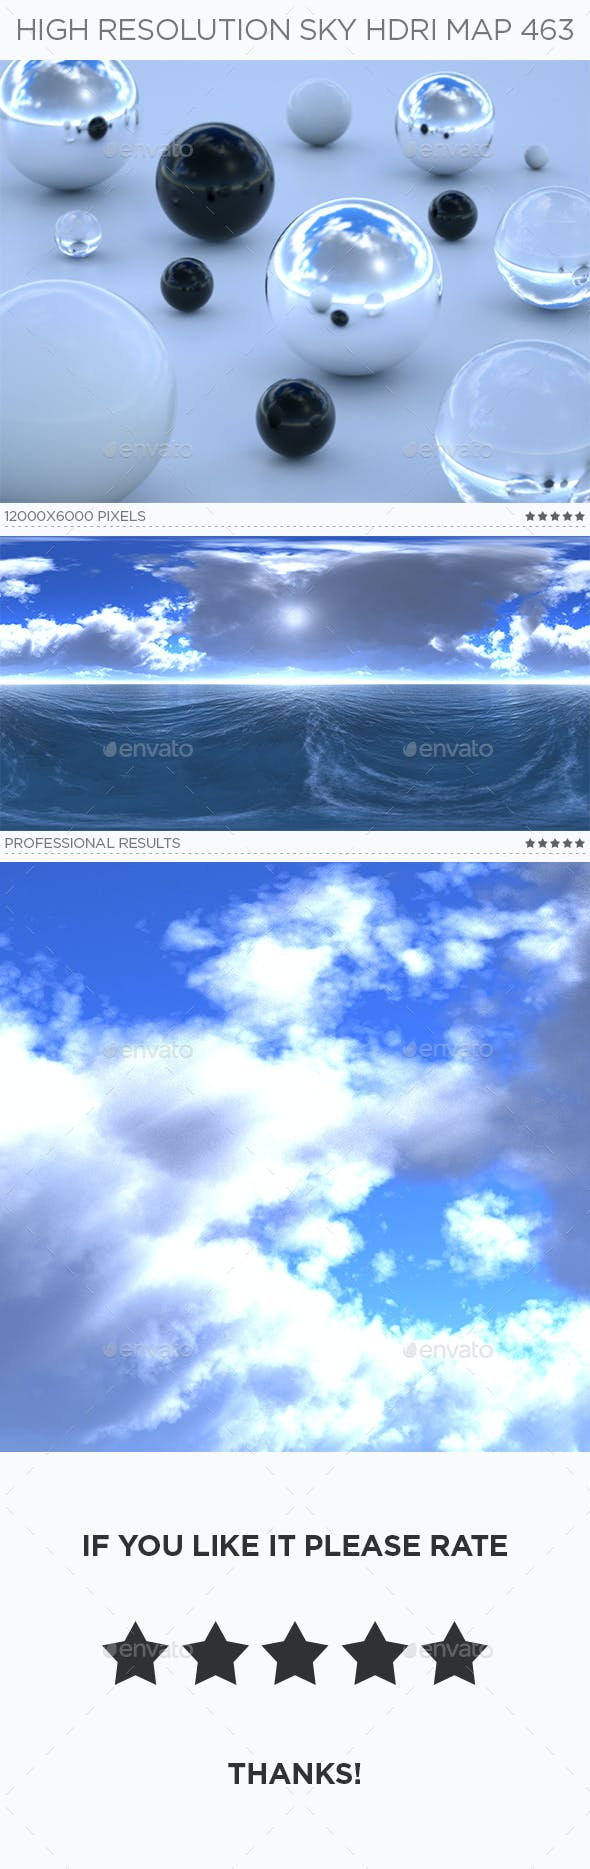 High Resolution Sky HDRi Map 463 - 3DOcean Item for Sale